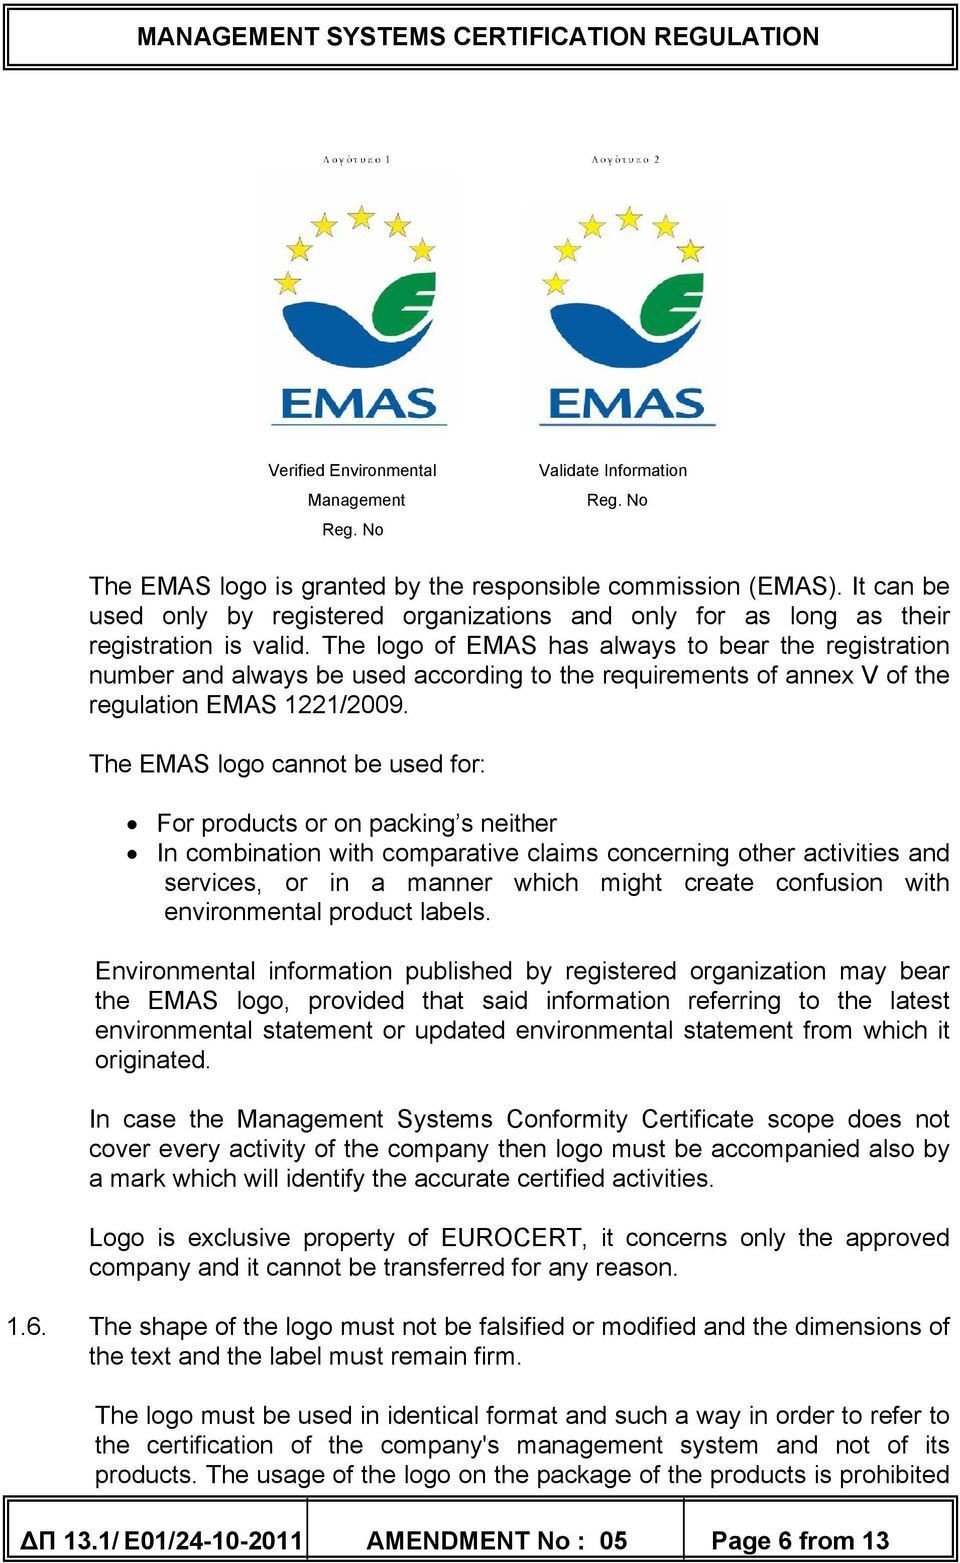 The logo of EMAS has always to bear the registration number and always be used according to the requirements of annex V of the regulation EMAS 1221/2009.